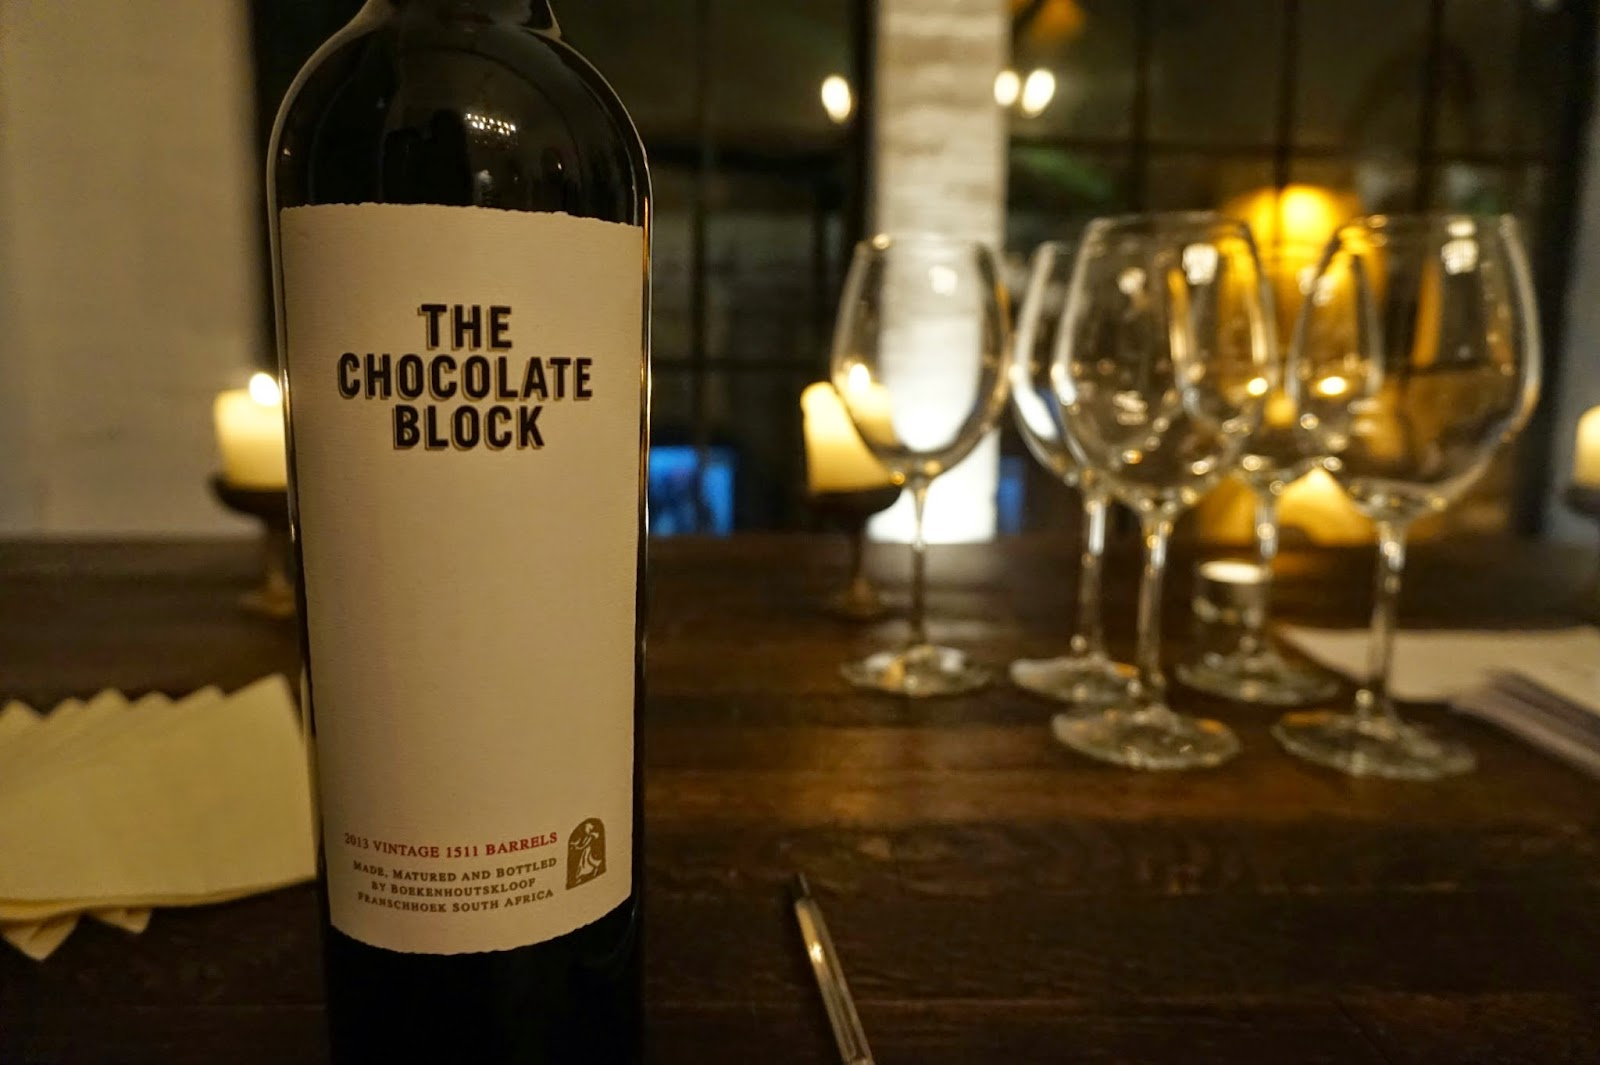 The Chocolate Block Wine